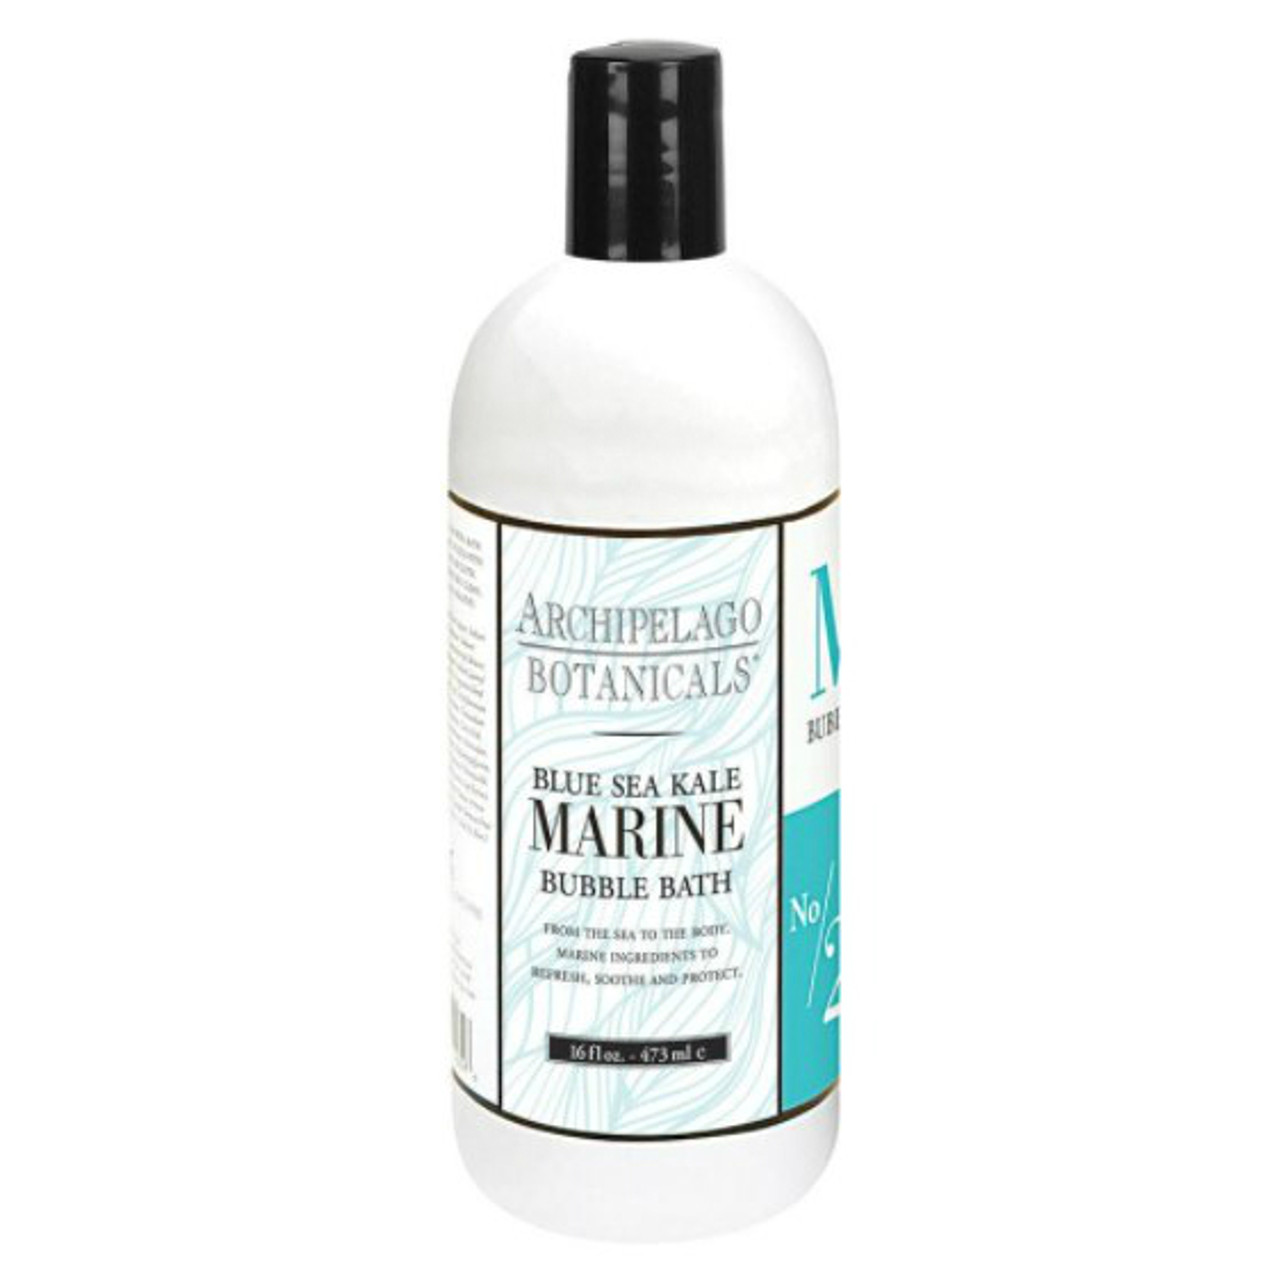 Archipelago Marine Bubble Bath 16 oz